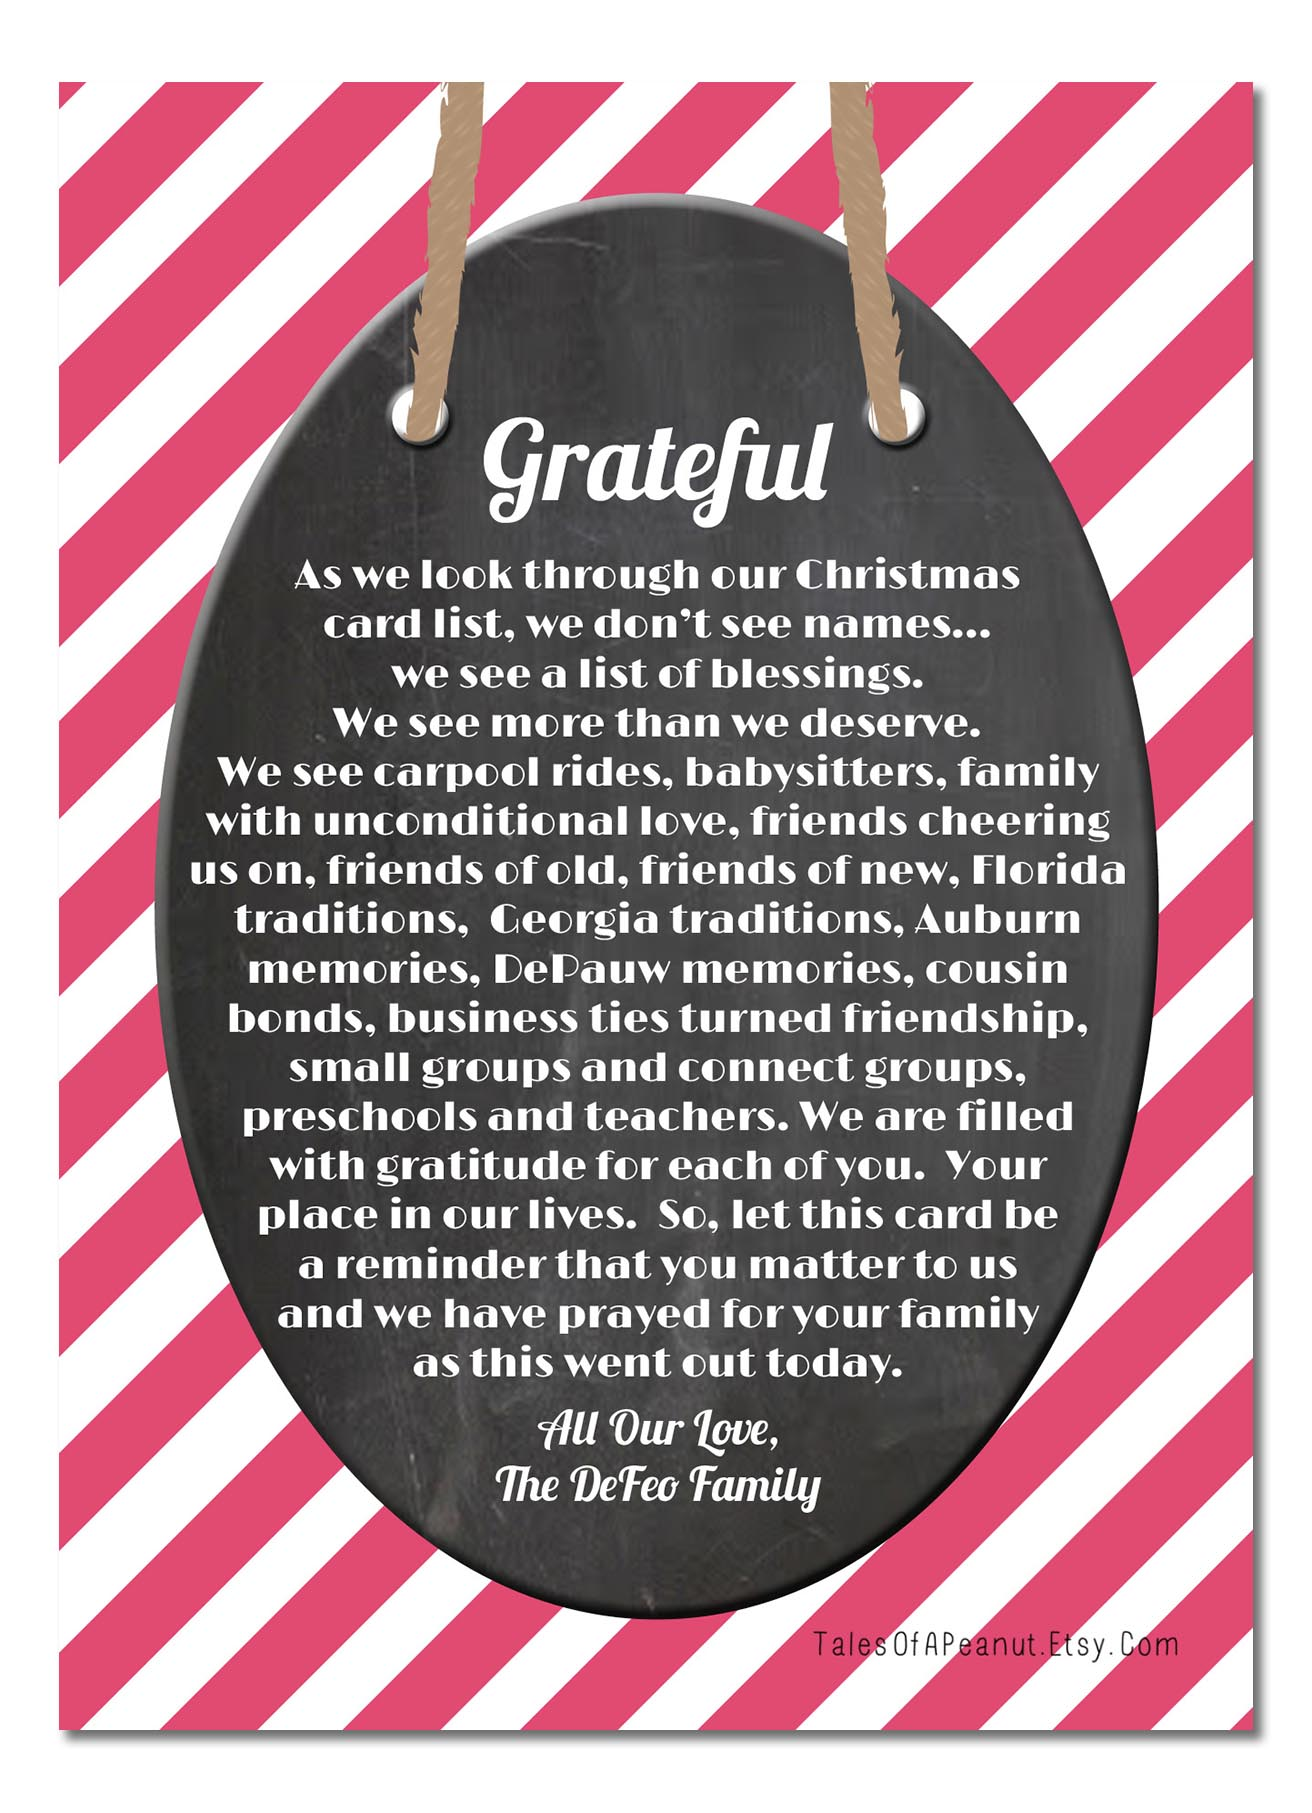 Our Christmas Greeting Courtney Defeo